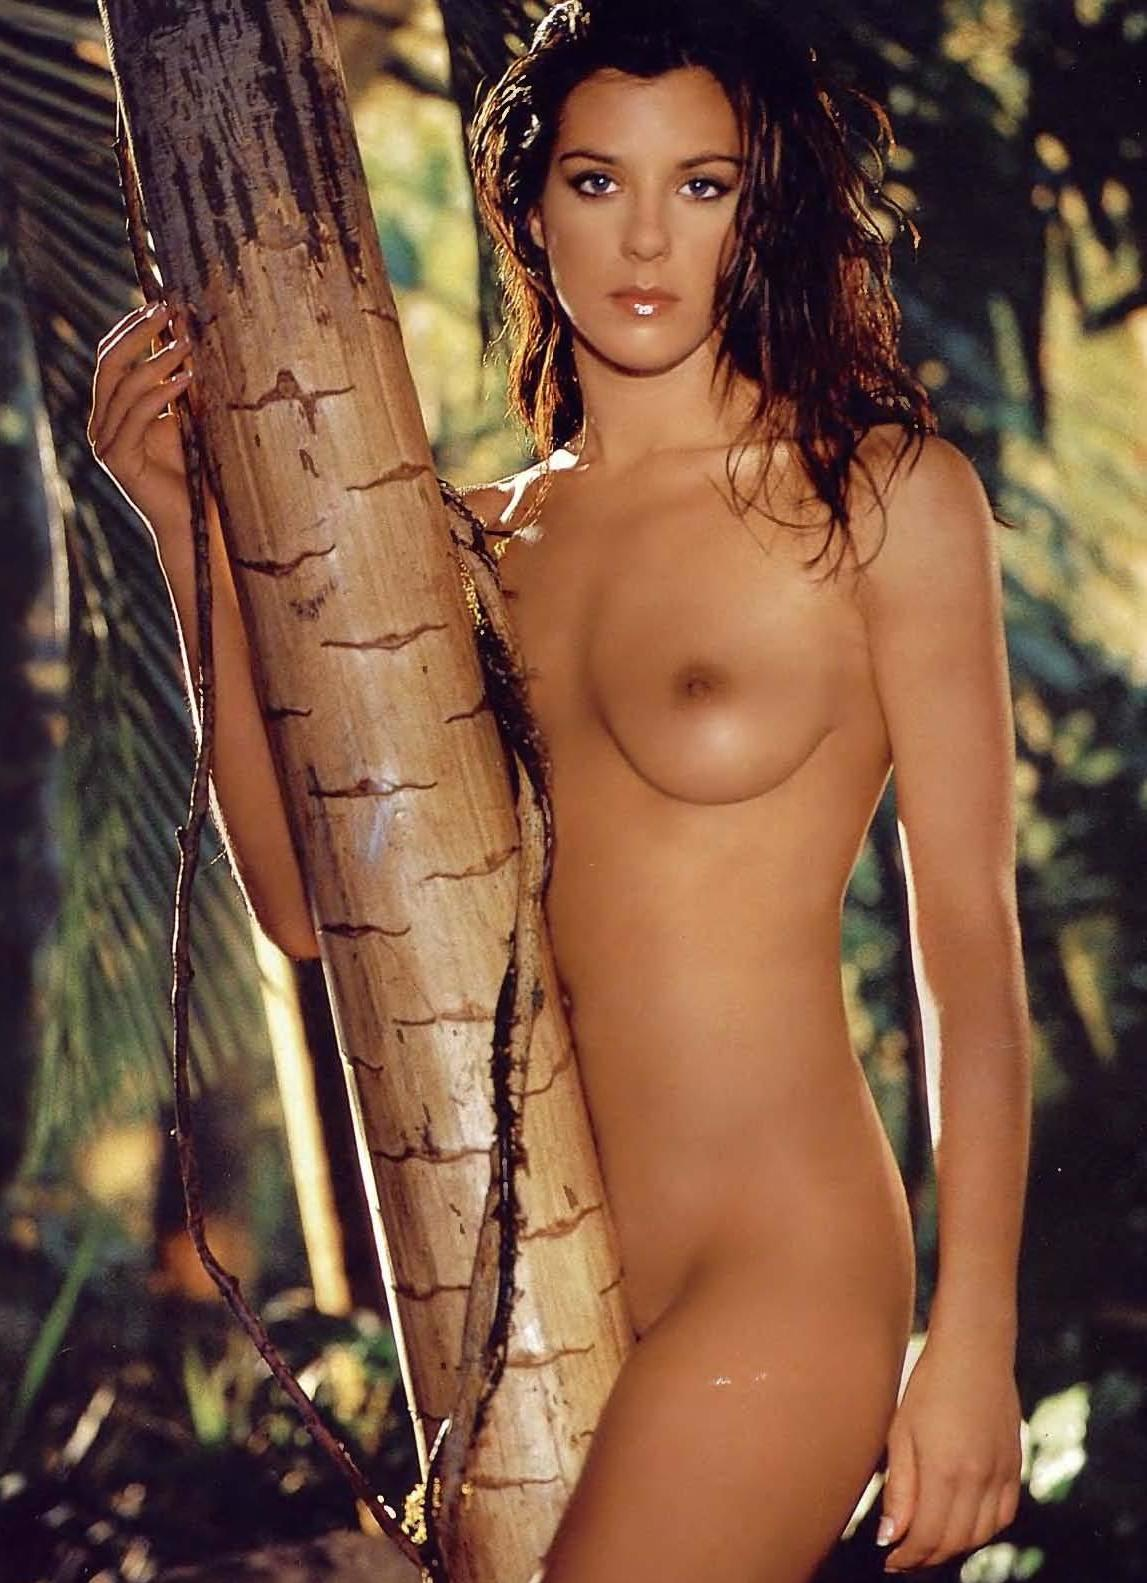 Sarah jones survivor nude